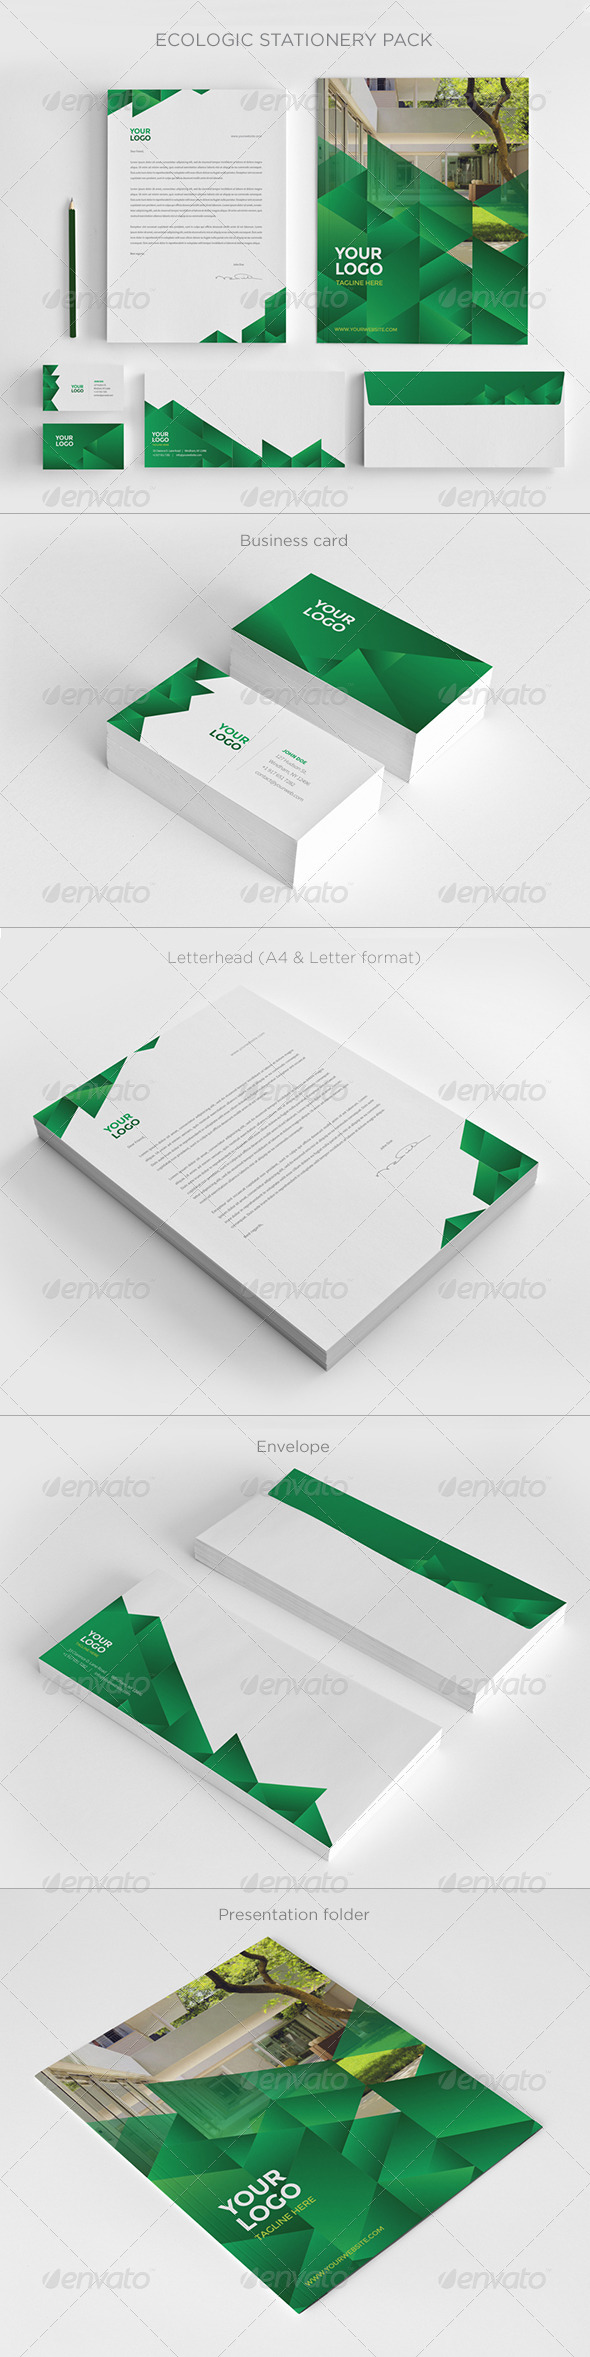 GraphicRiver Ecologic Stationery Pack 7476303